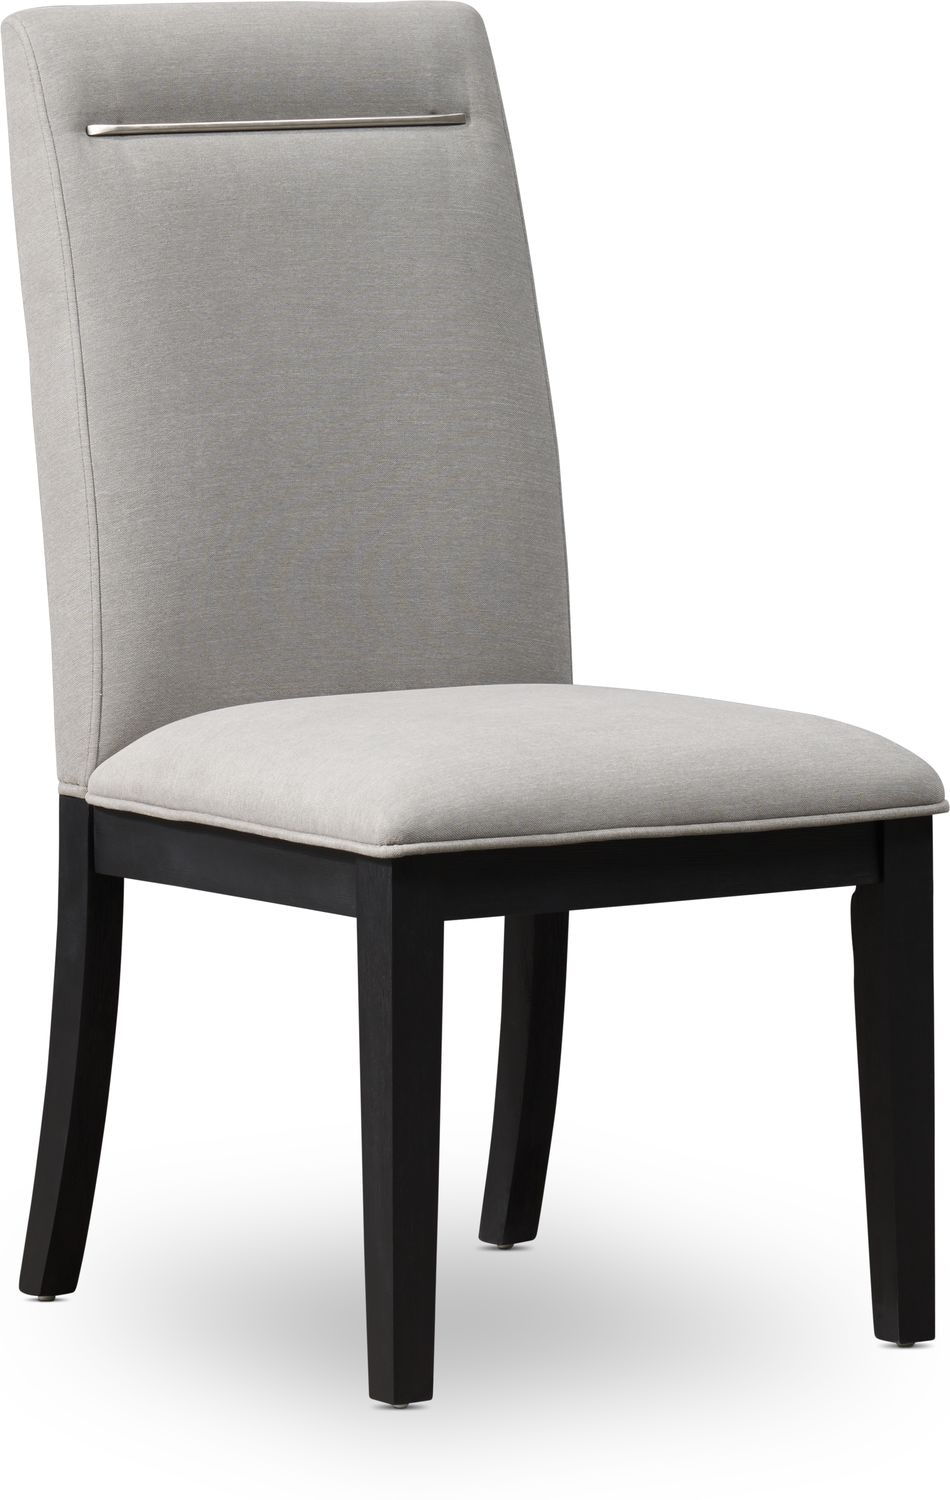 Dining Room Furniture - Banks Dining Chair